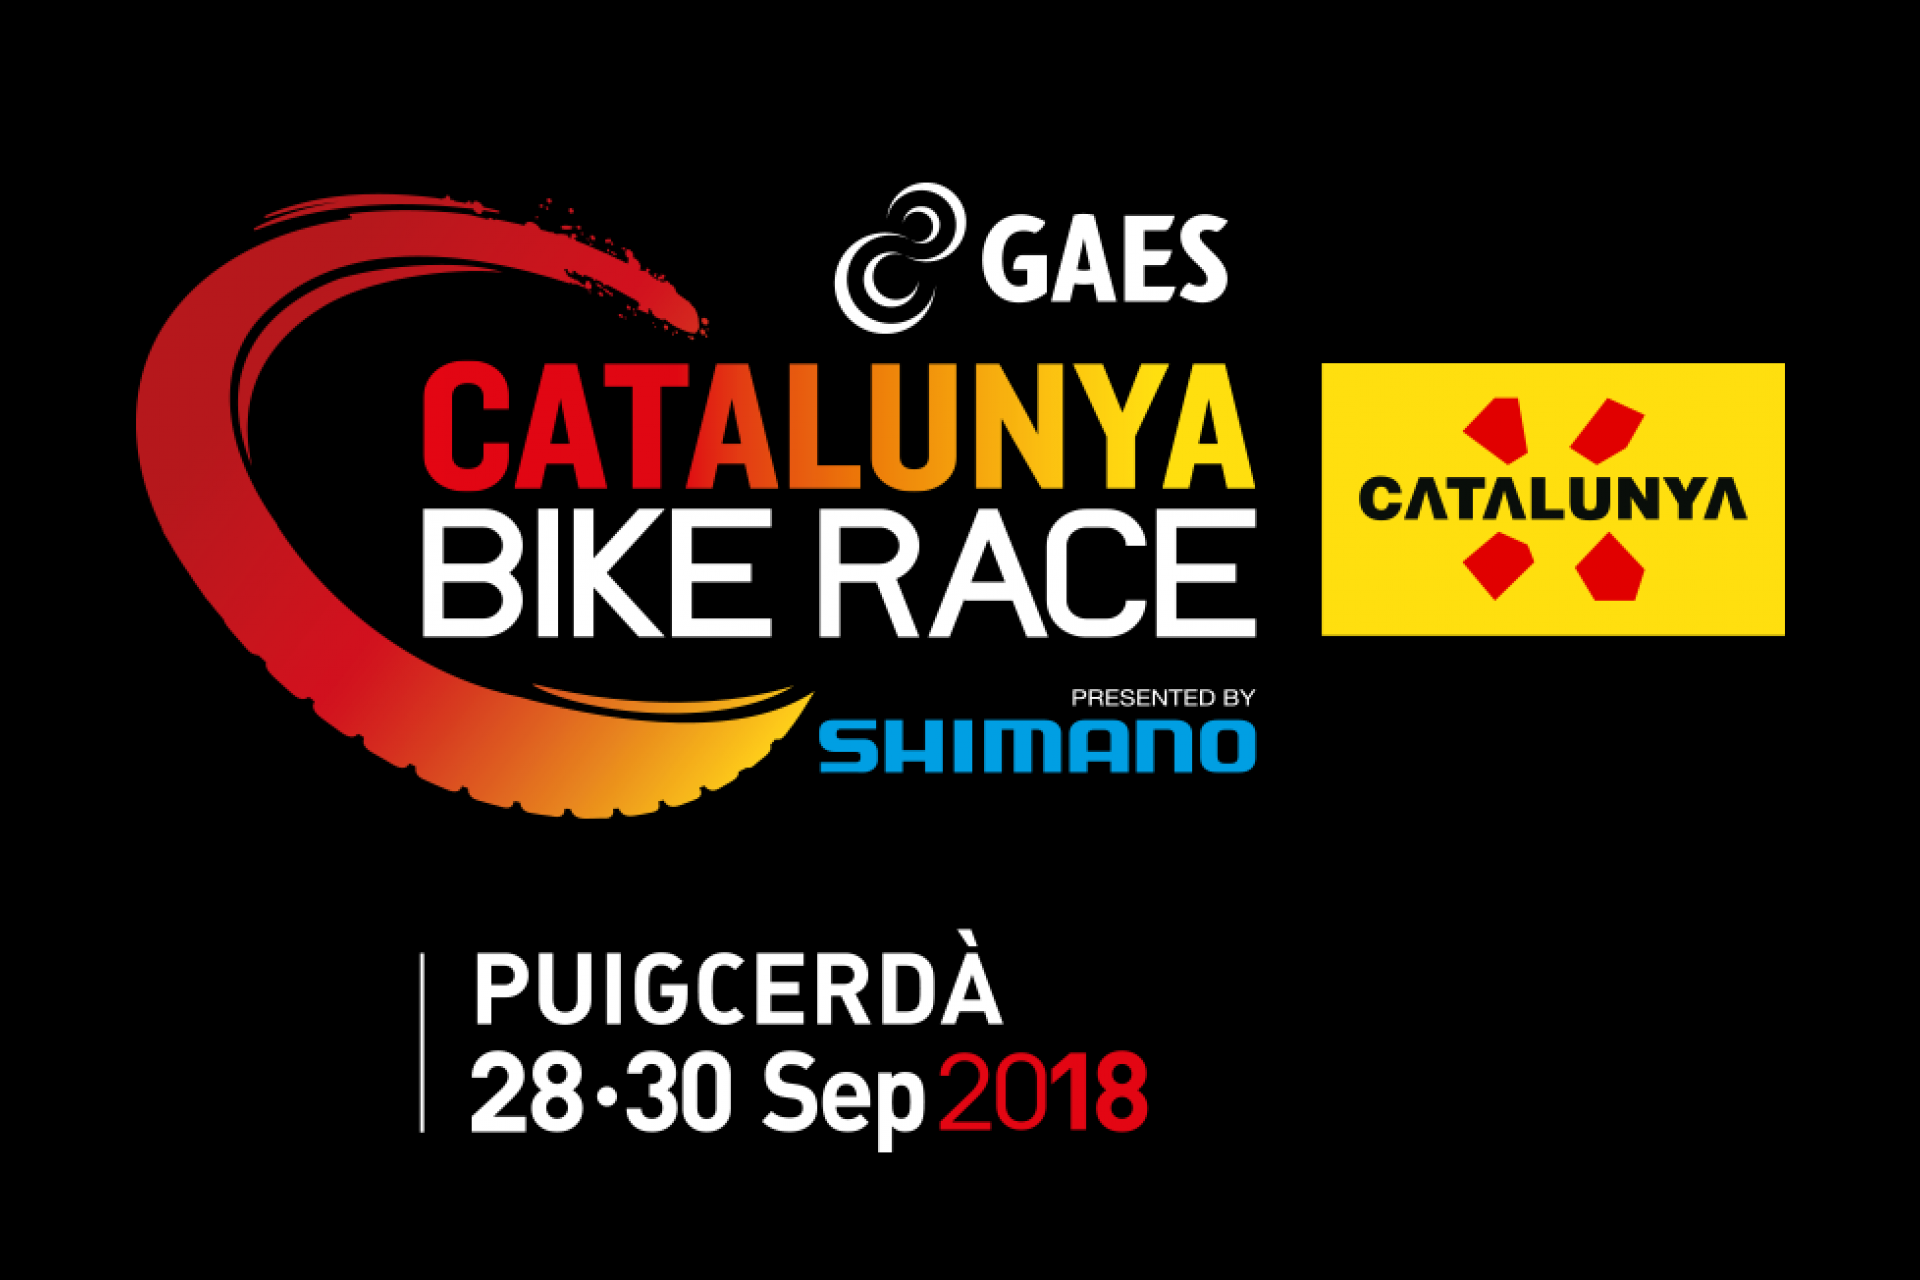 Una nova edició de GAES Catalunya Bike Race presented by Shimano